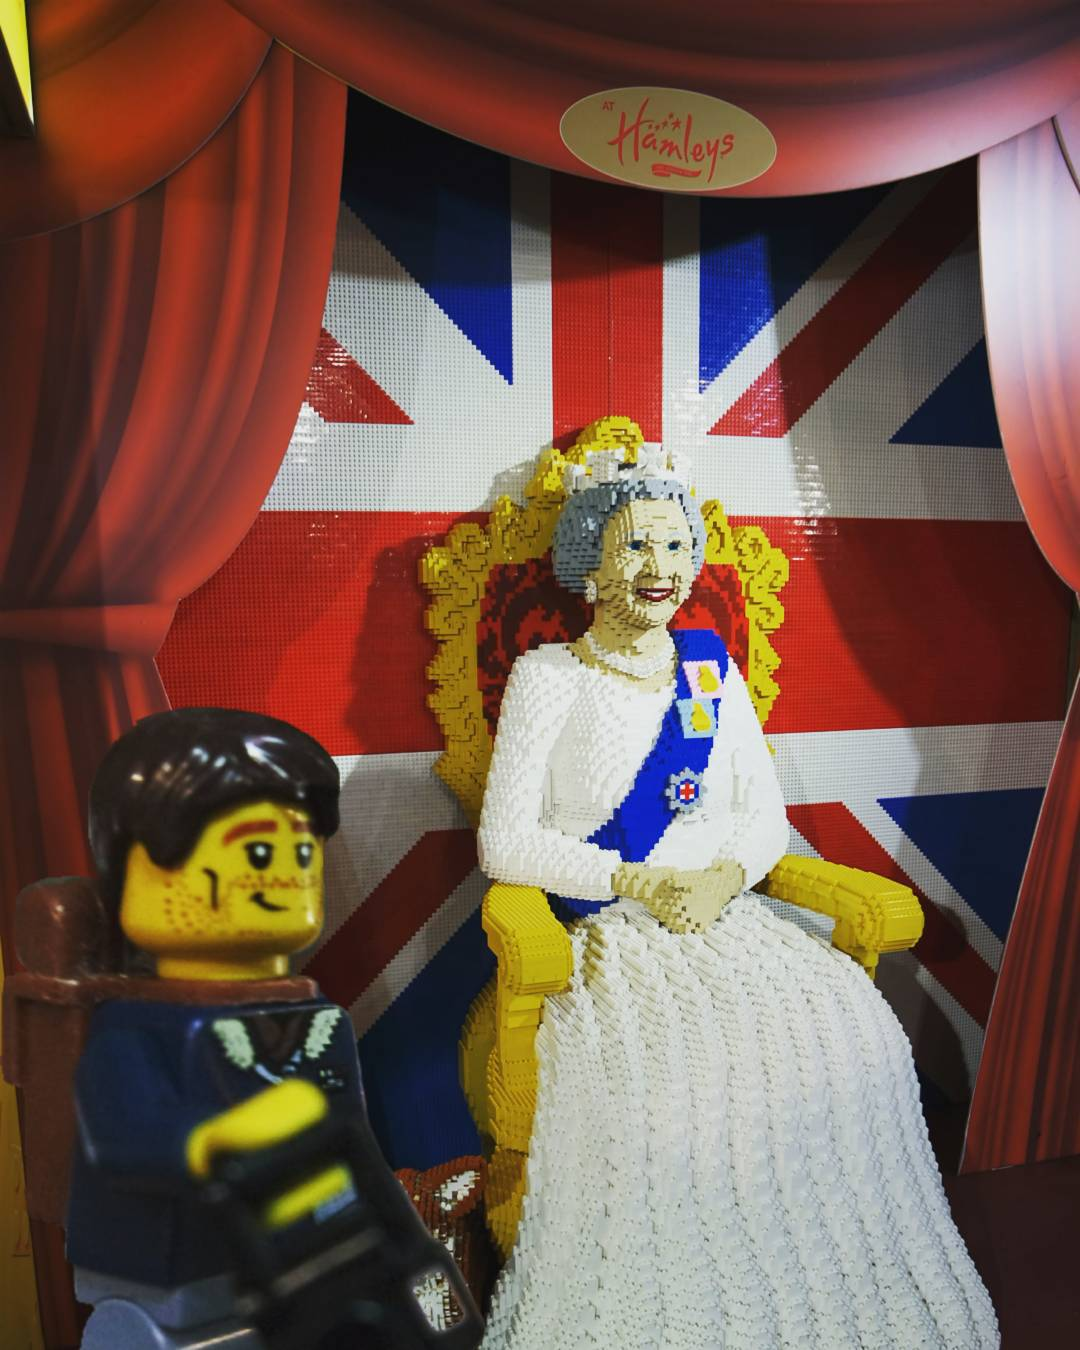 Found the Lego Queen in Hamleys Toy Store, London, England